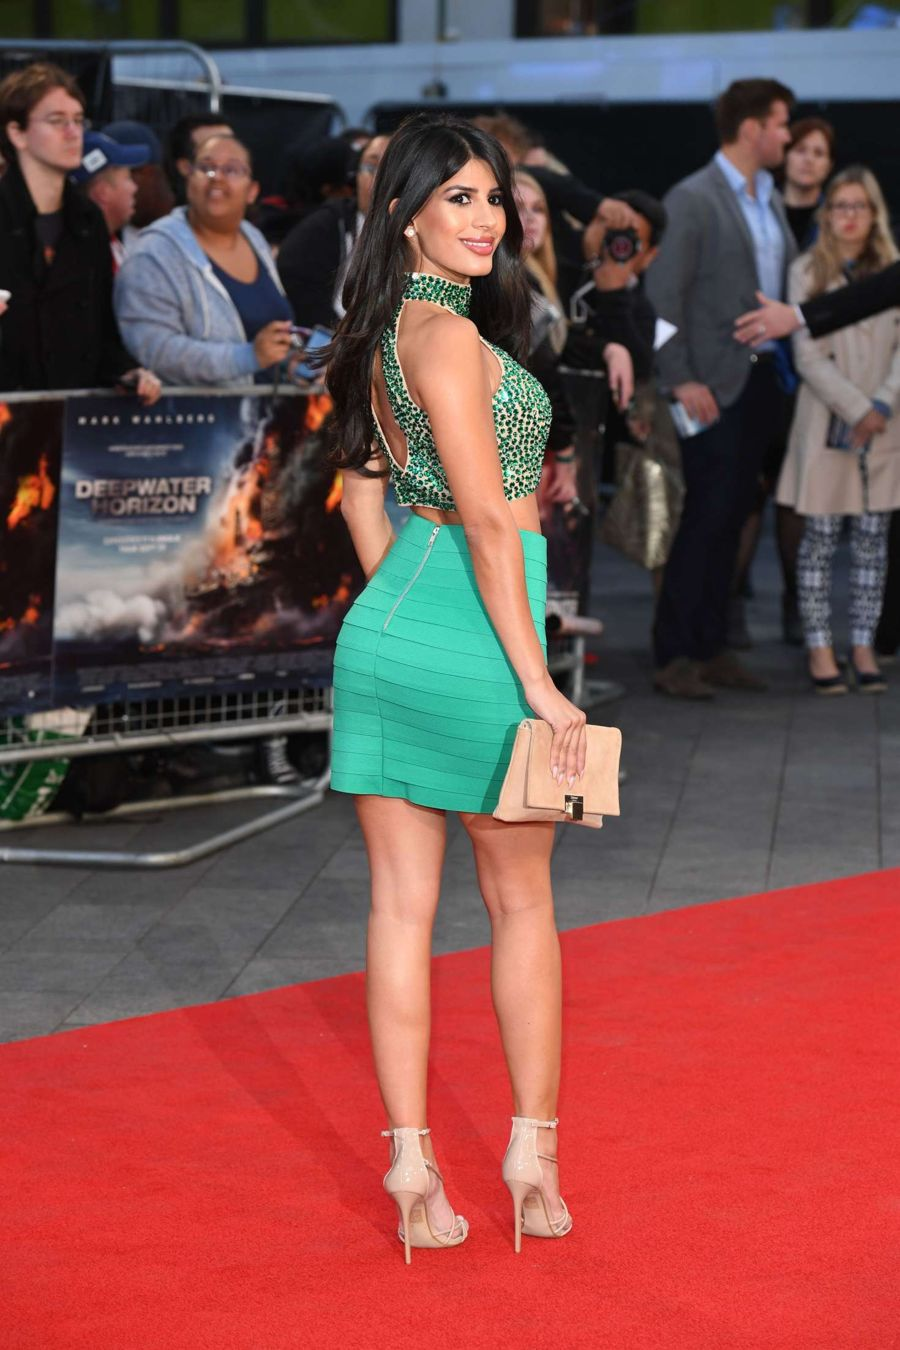 Jasmin Walia Glams Up 'Deepwater Horizon' premiere